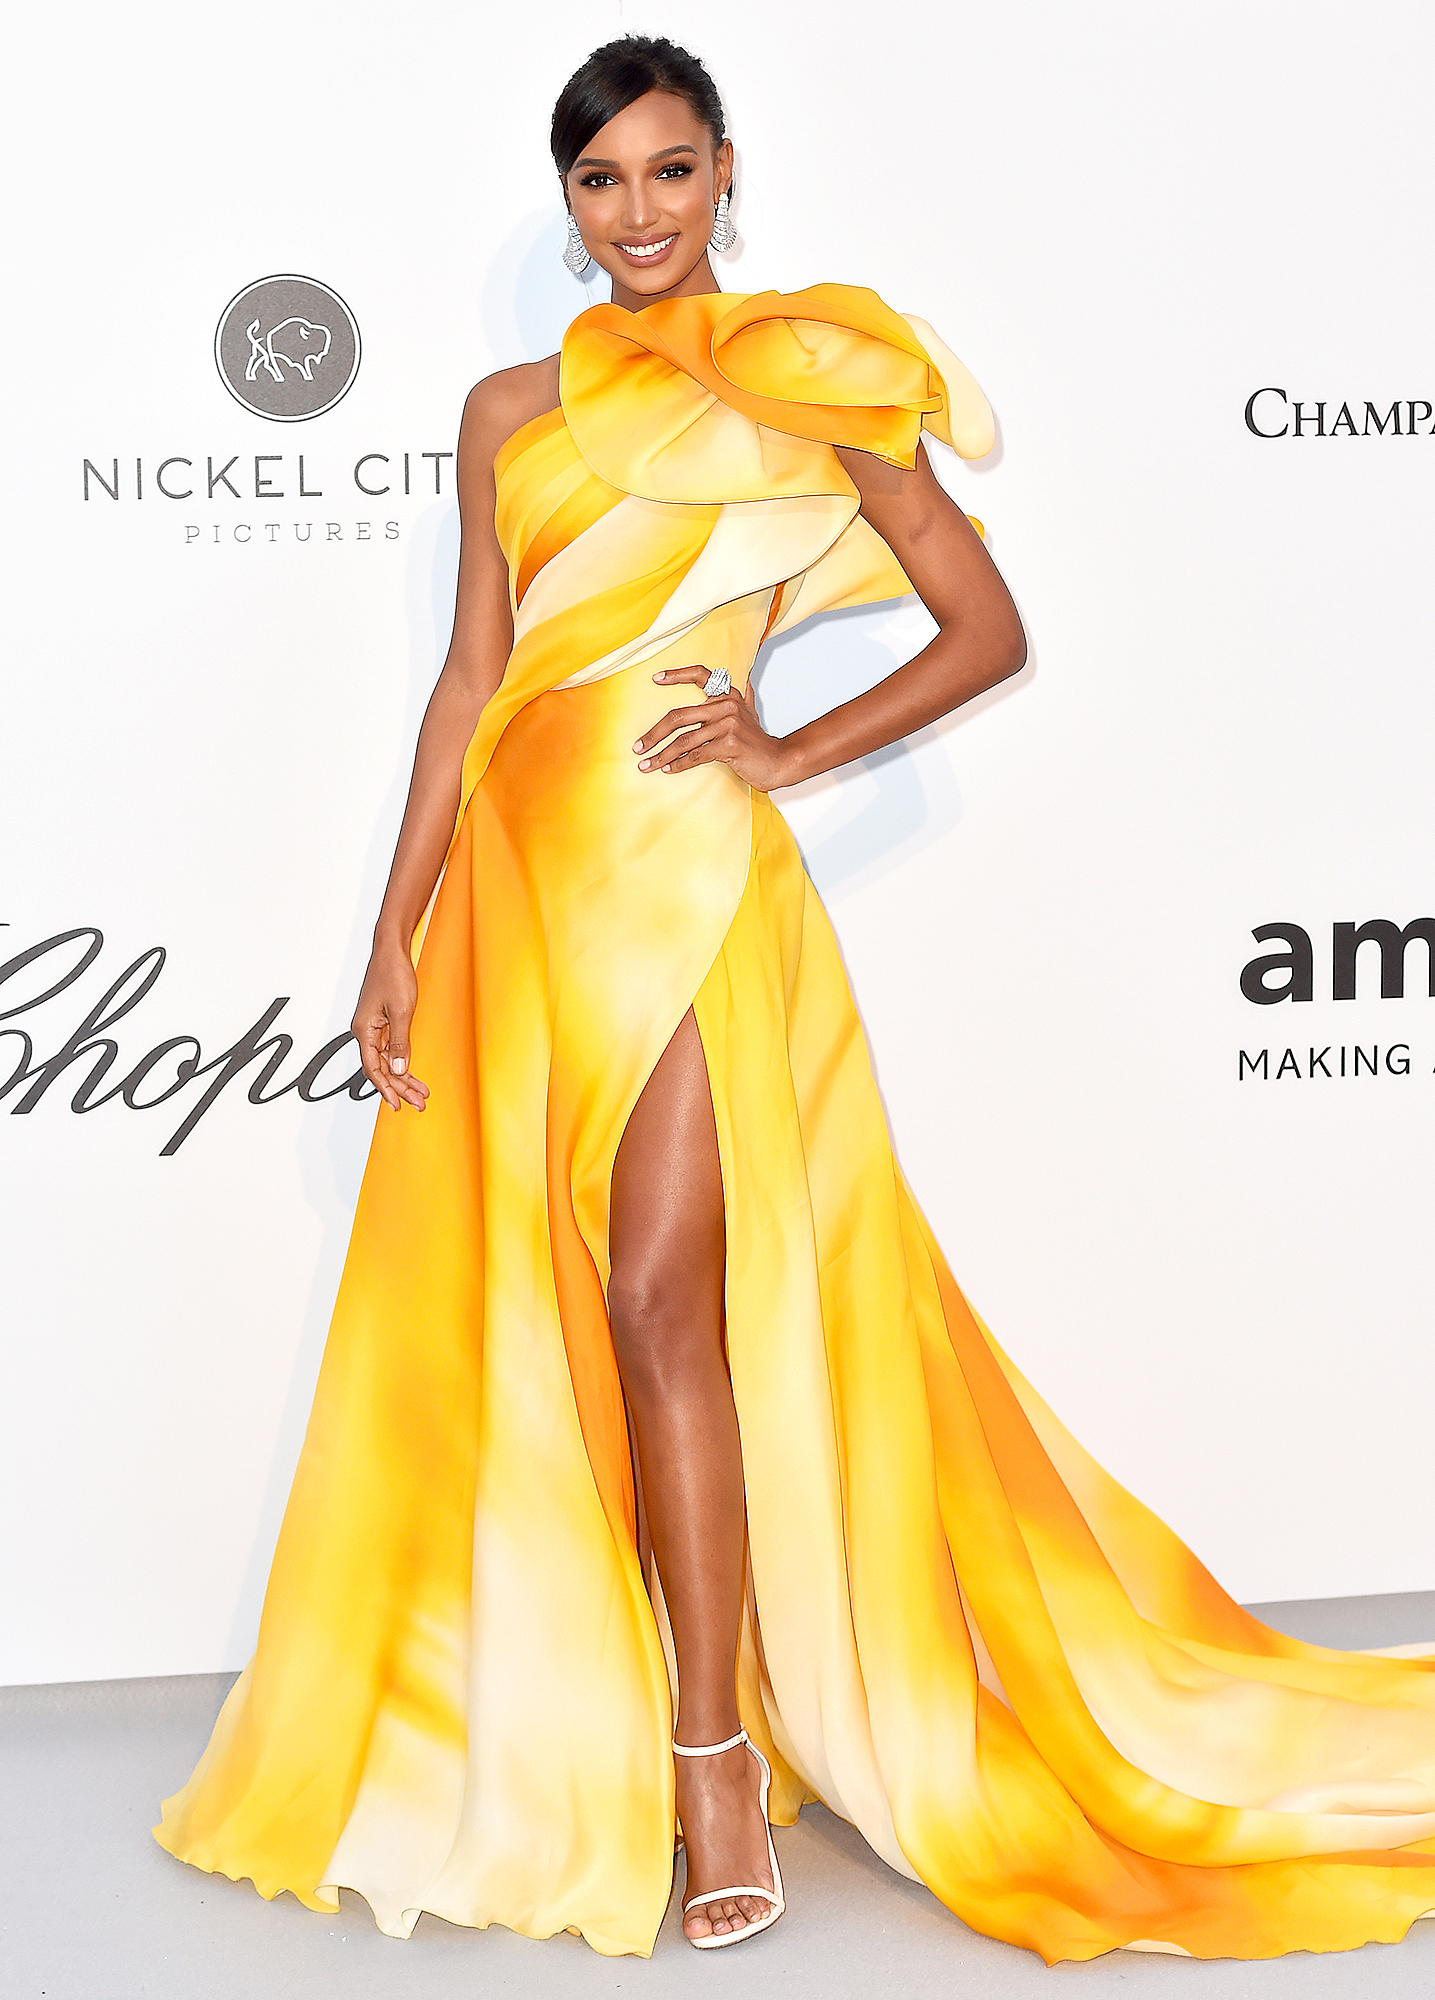 Jasmine-Tookes - Bringing a bit of sunshine to the red carpet, the model stunned in Georges Chakra at the amfAR Cannes Gala on Thursday, May 23.